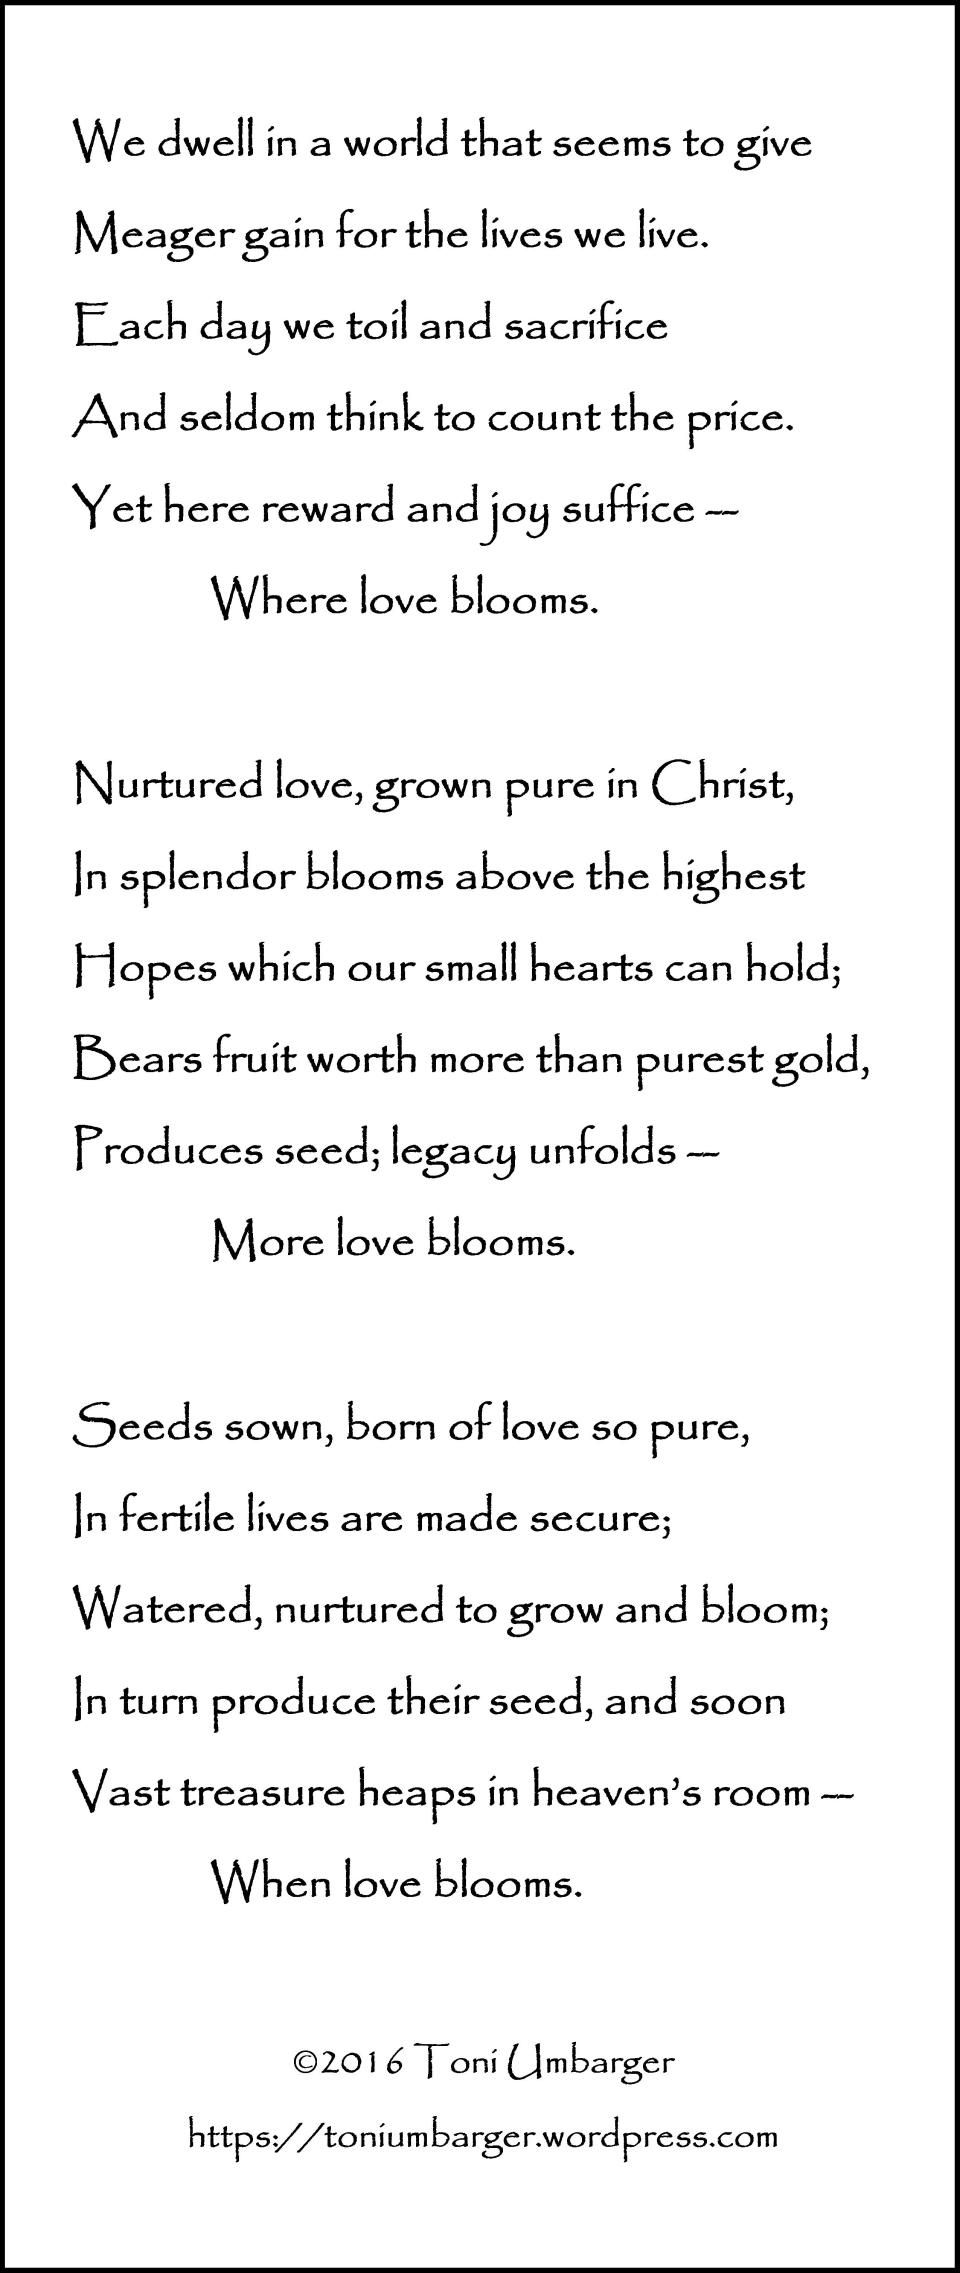 toni umbarger thoughtseeds love blooms poetry love faith https